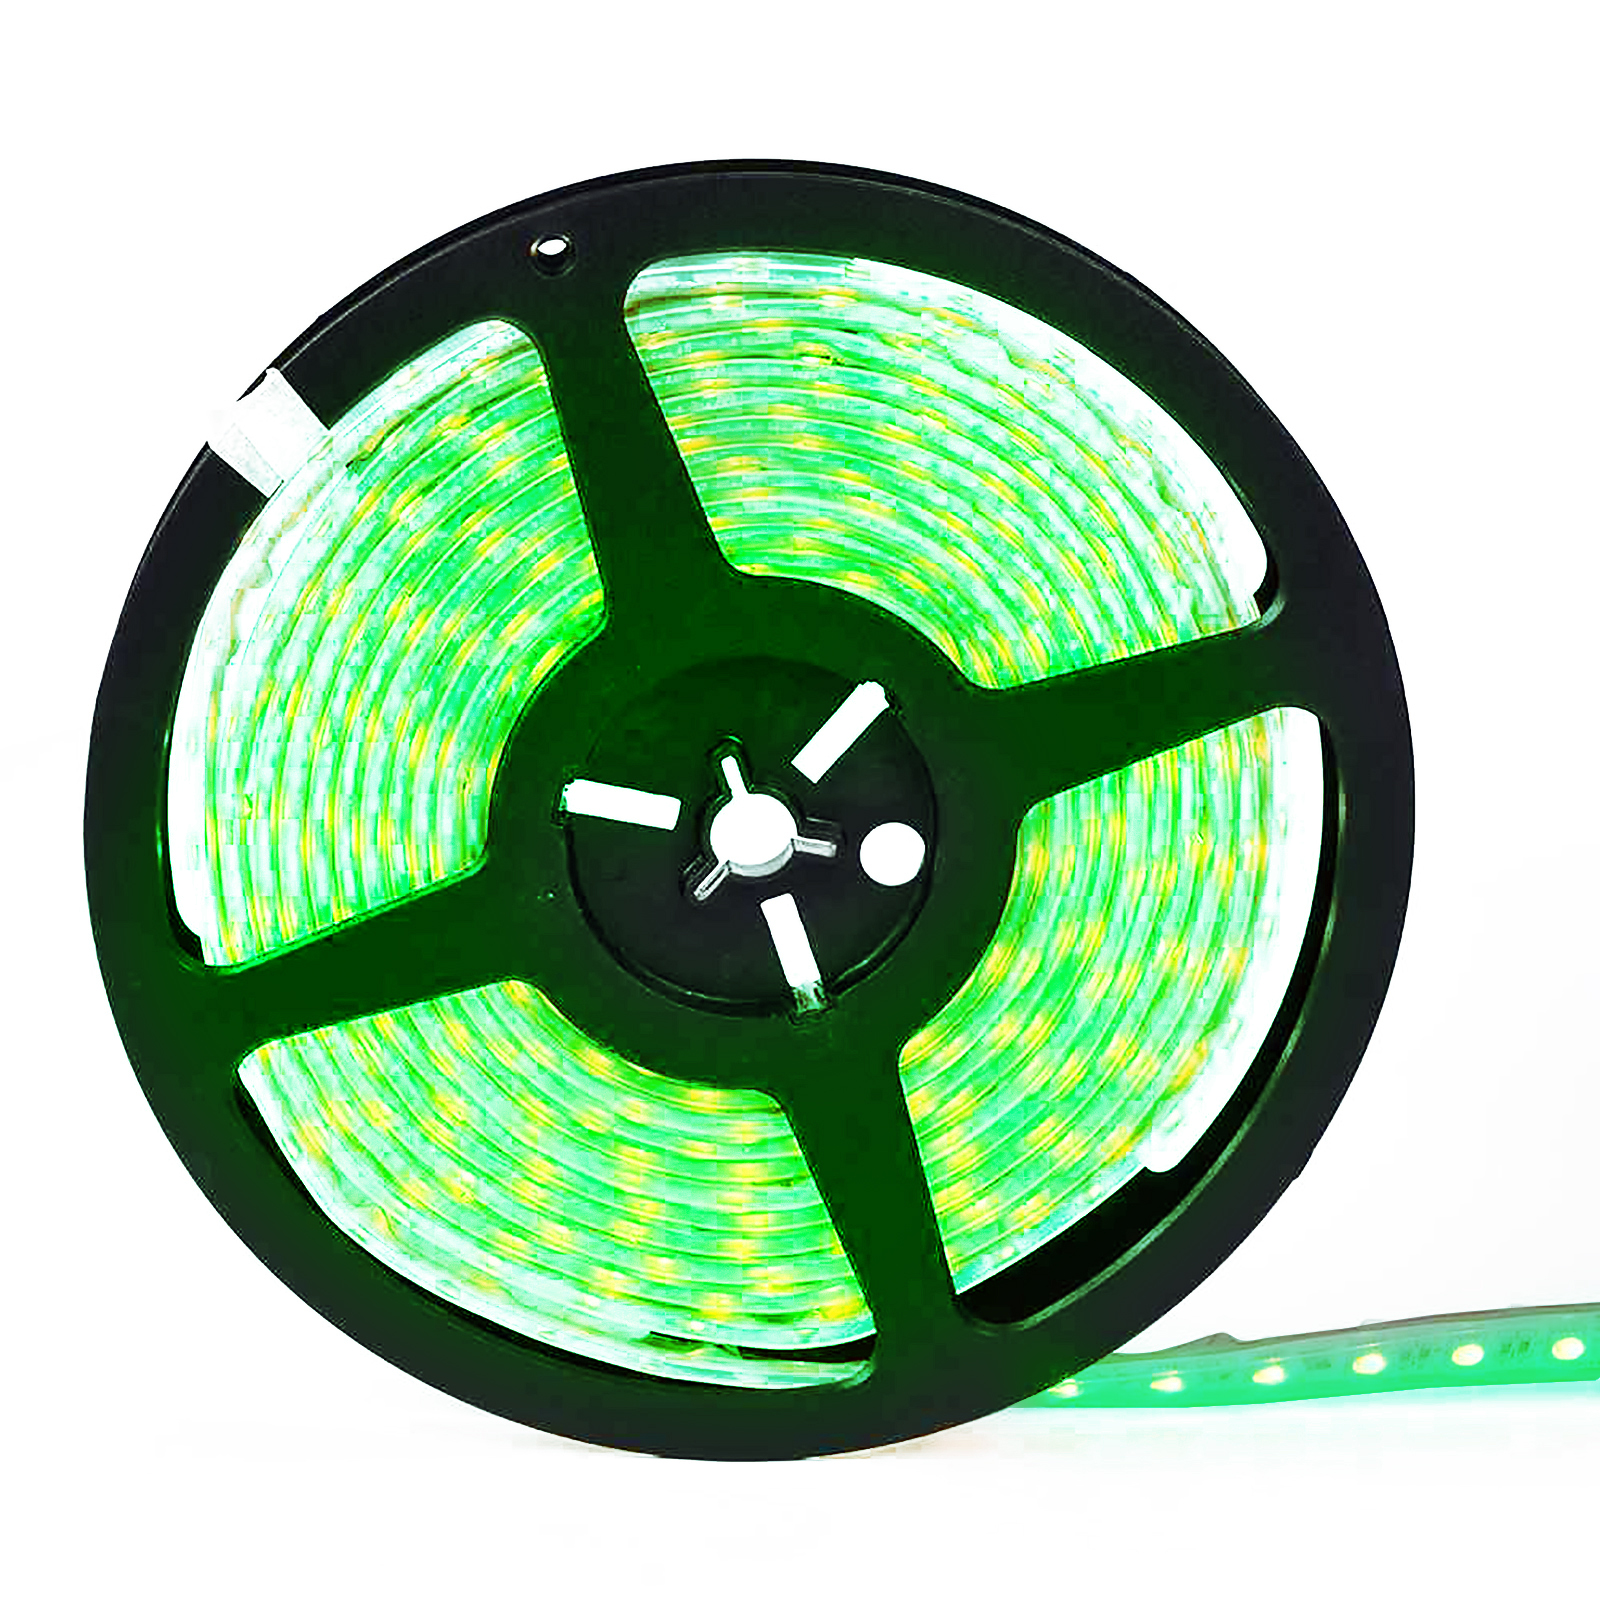 KIT LED strip 70W 24V RGB 6200K multicolored chromotherapy indoor light games WiFi voice control Alexa Google 5 meters